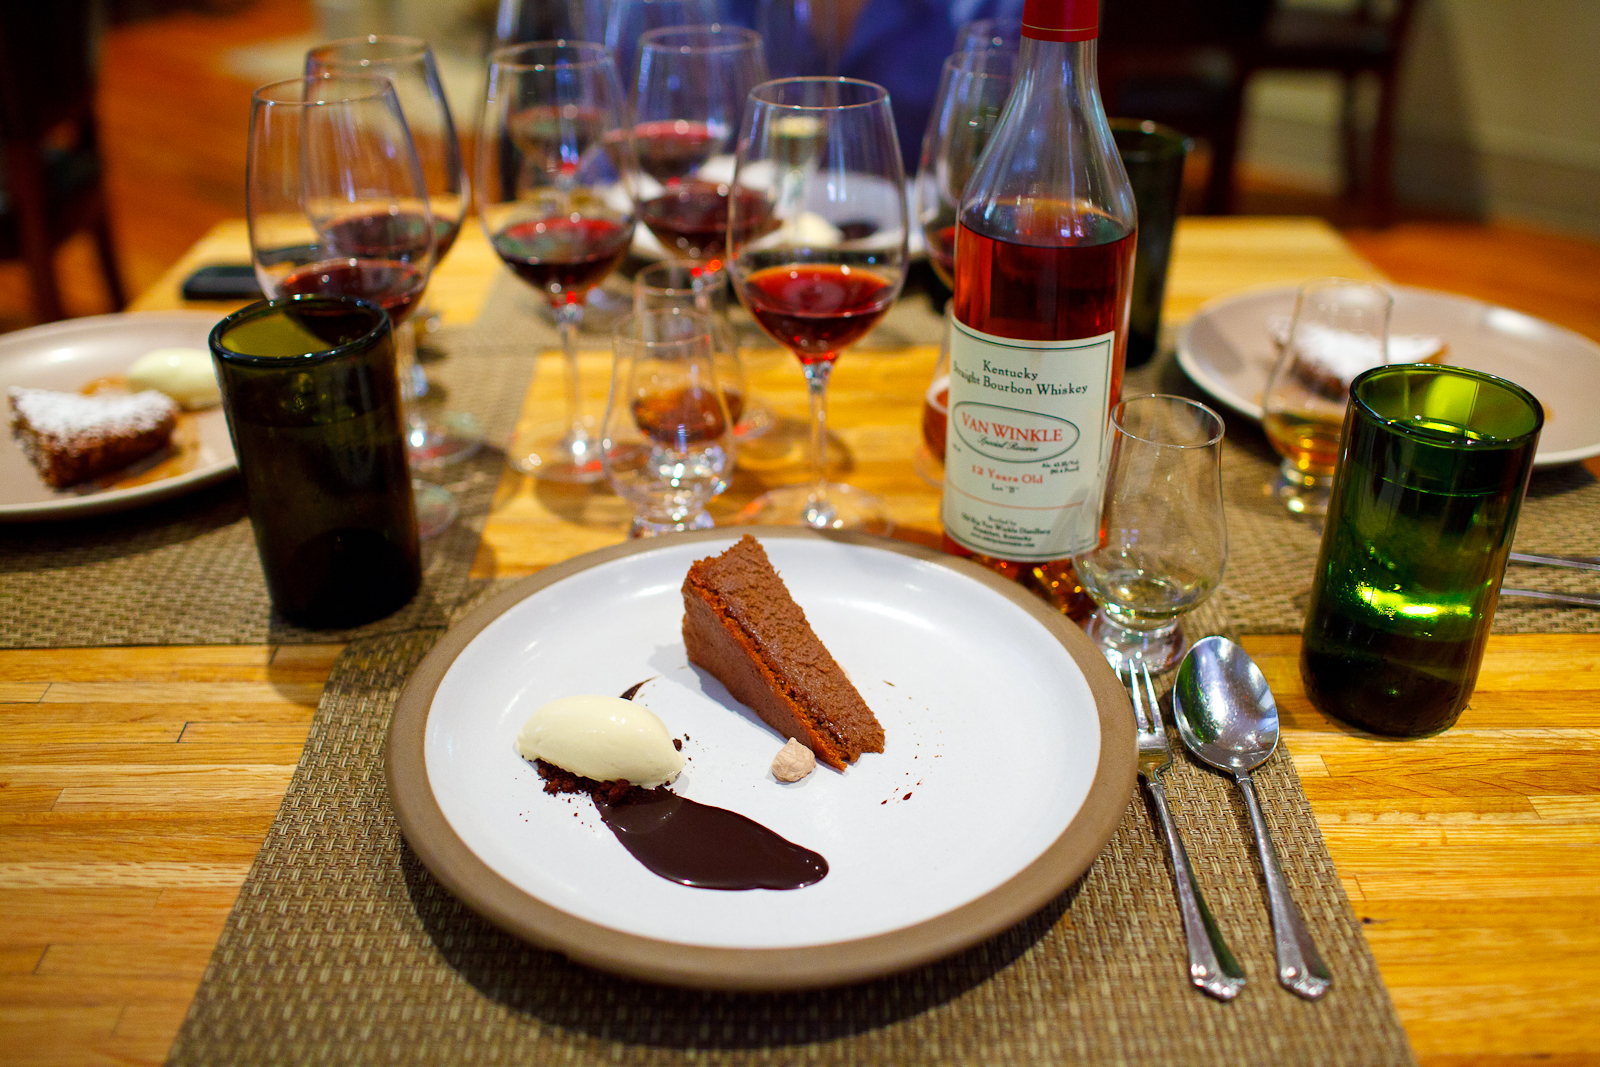 12th Course: Chocolate and mocha pie